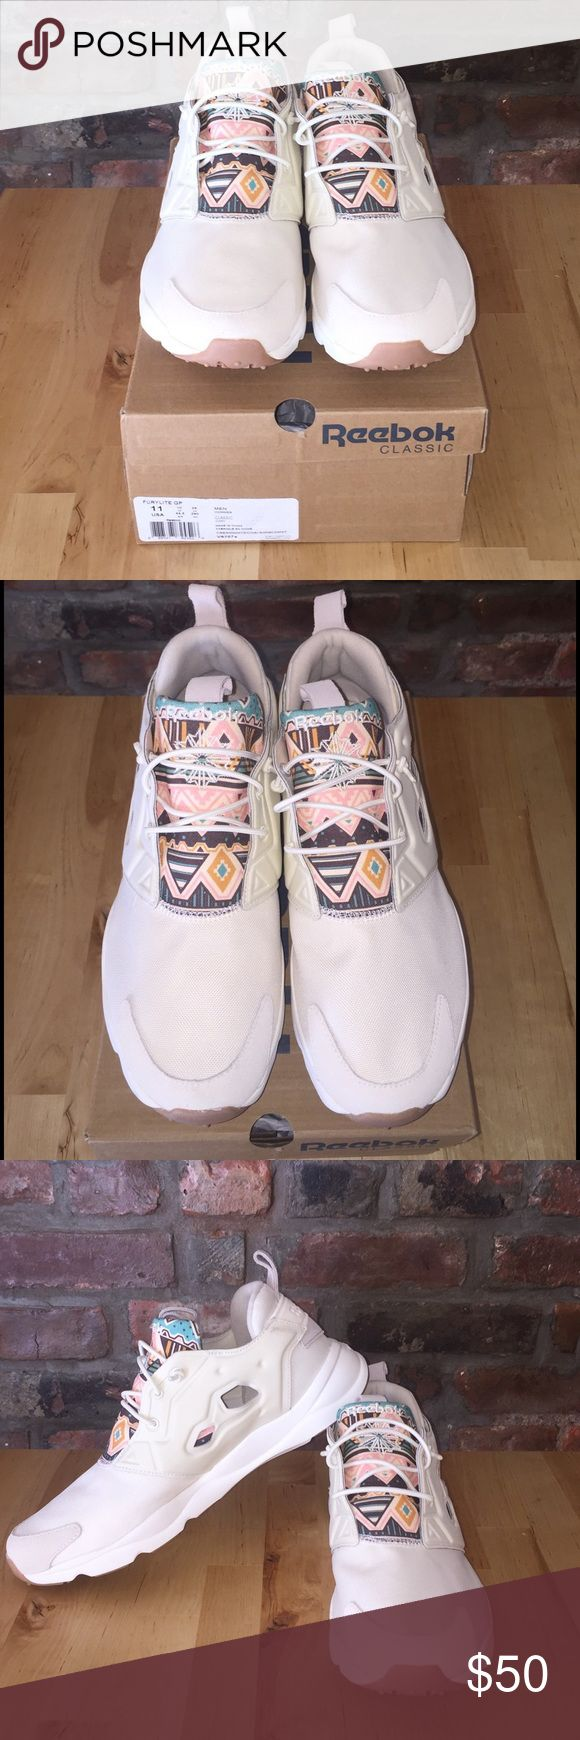 Reebok- Furylite GP Brand New Sneaker Brand New! Reebok- Furylite GP Sneaker- Cream/White/Aztec pattern Accent- Small Cut Out Detail Reebok Shoes Sneakers